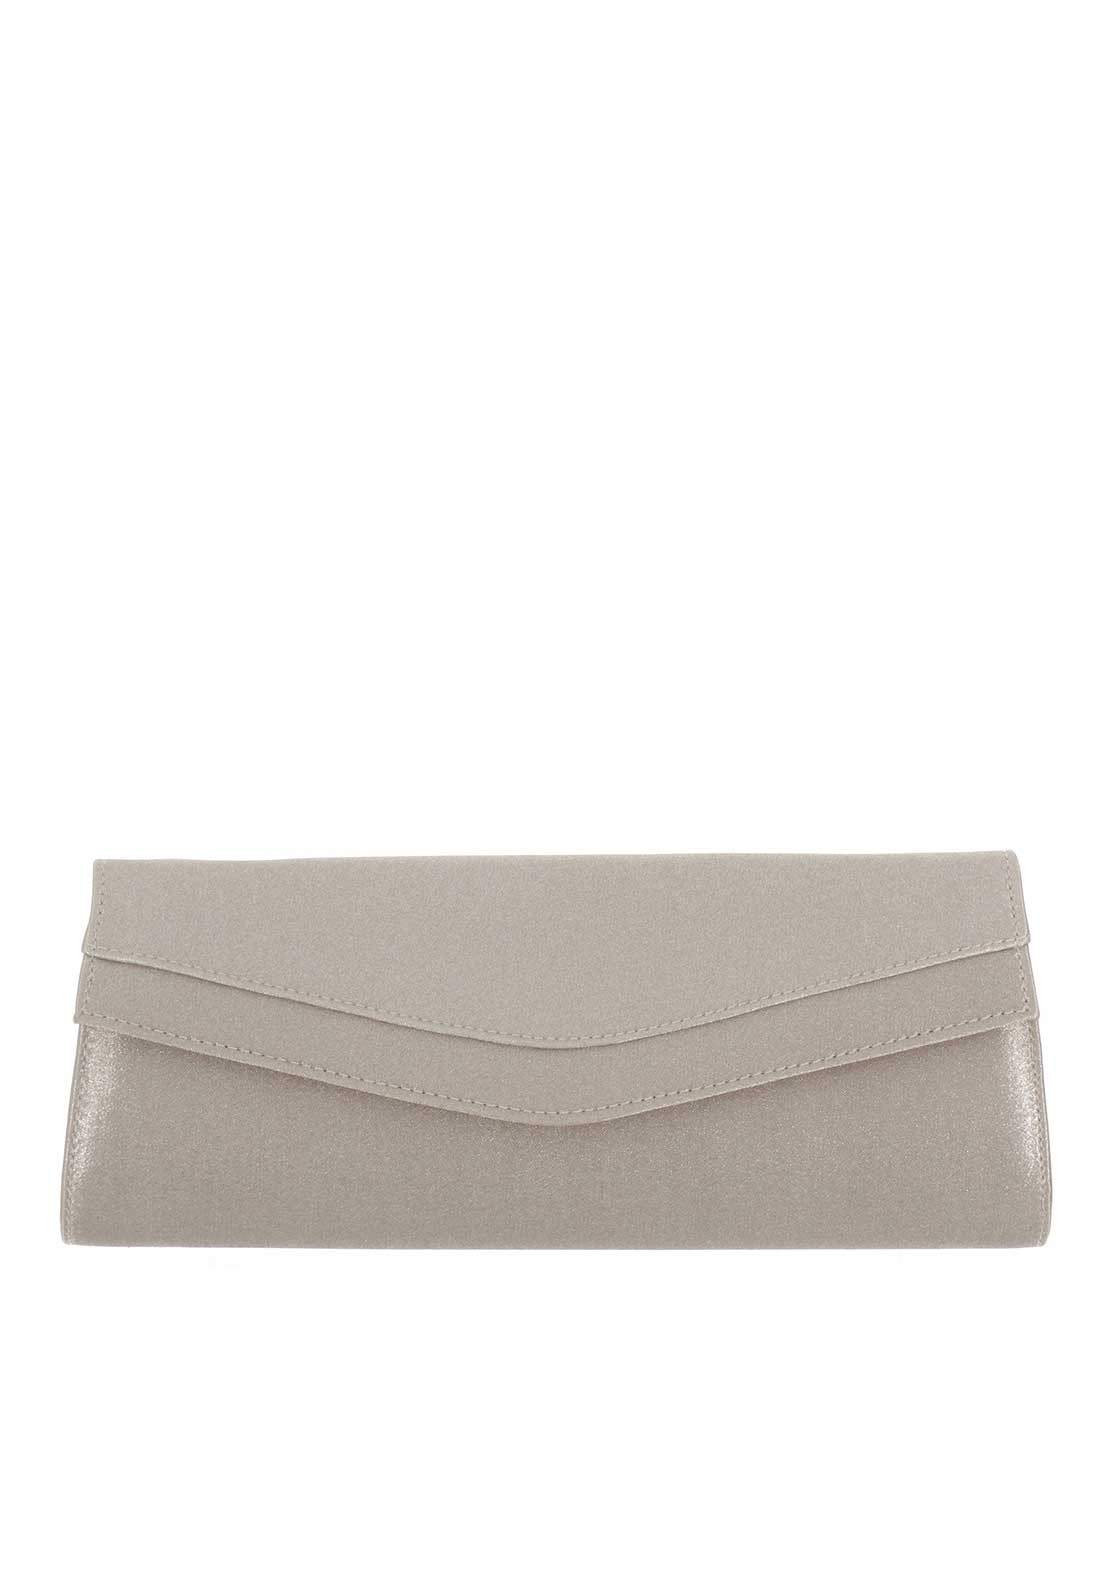 Ana Roman Satin Clutch Bag, Vintage Gold